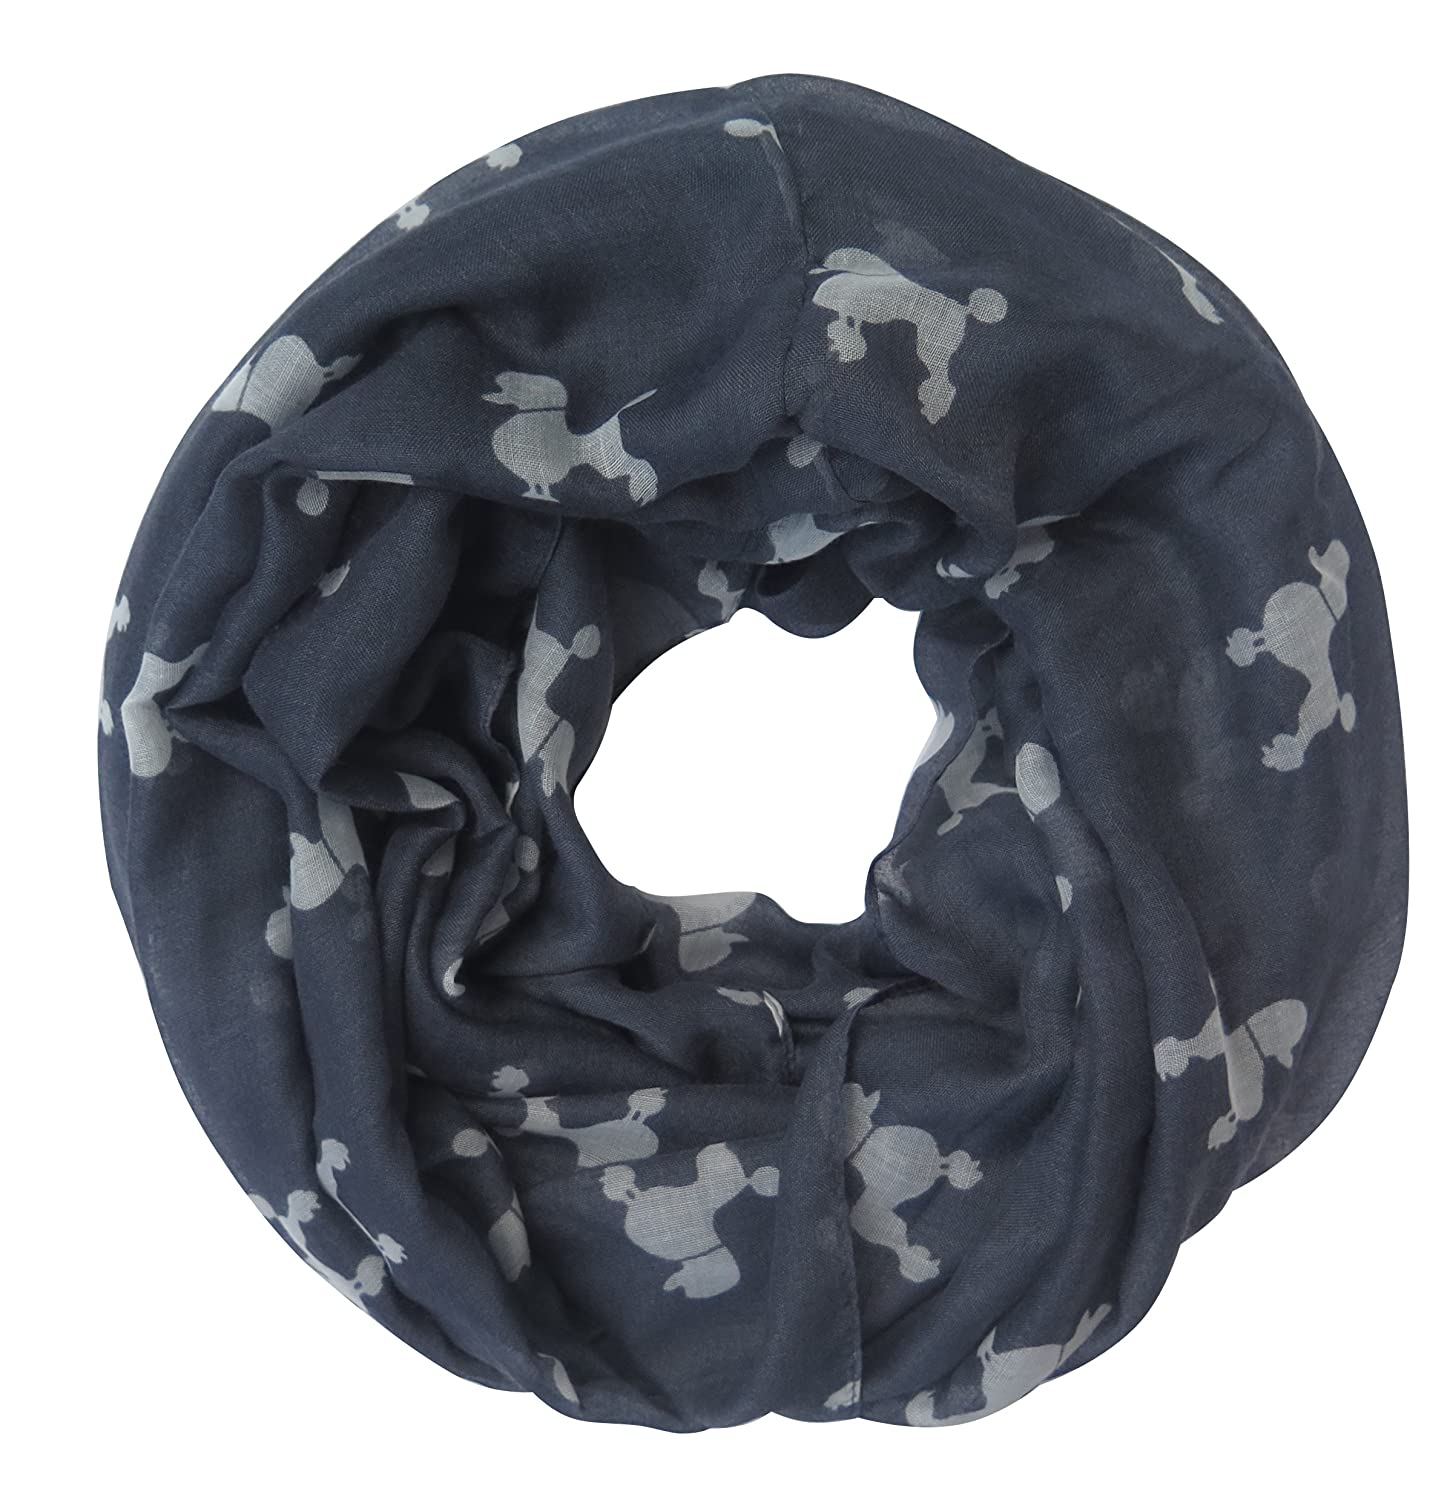 Lina & Lily Poodle Dog Print Women's Infinity Loop Scarf (Large Size, Black)